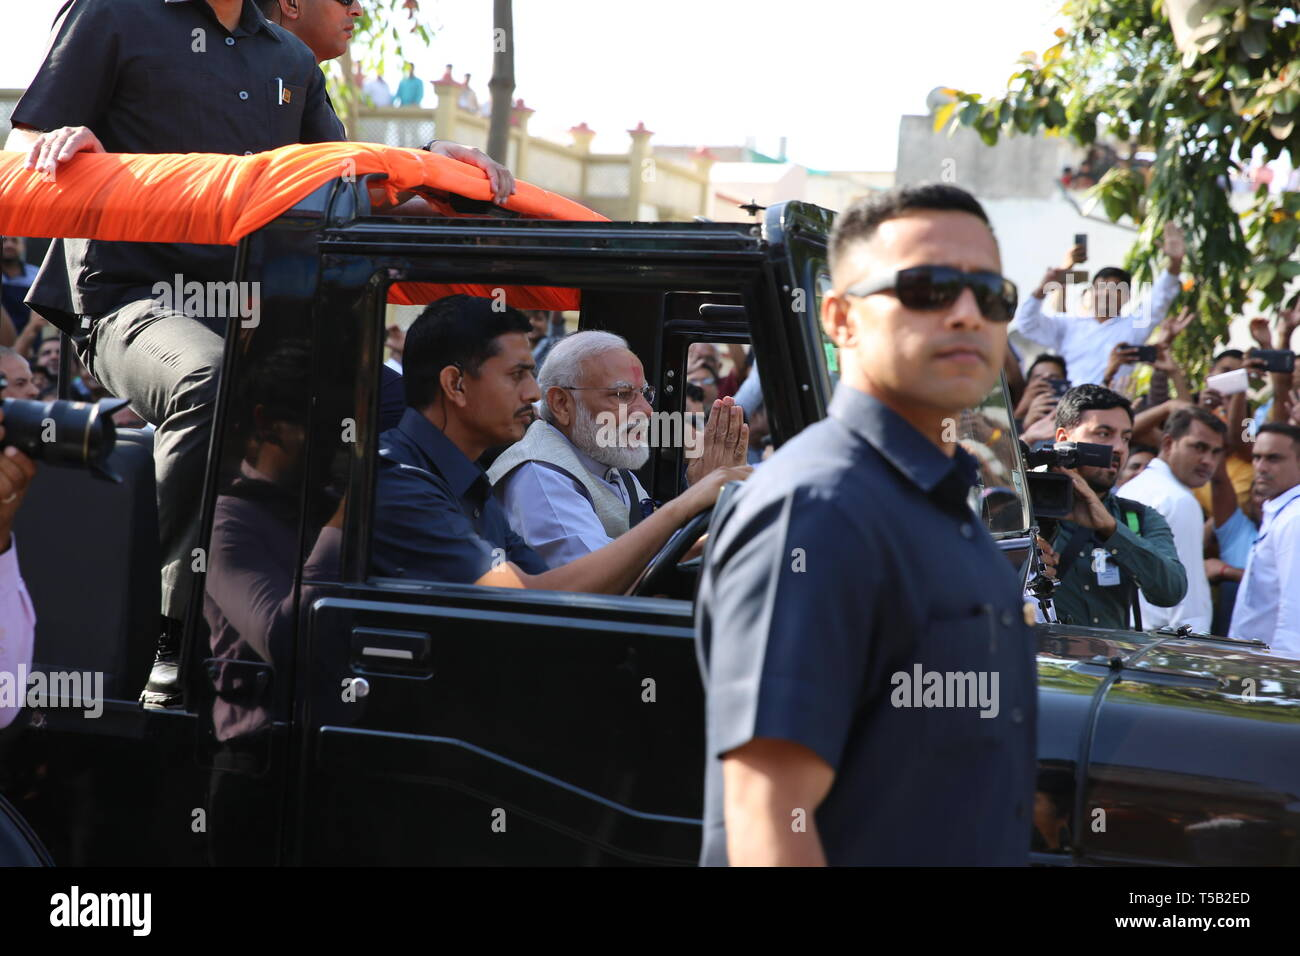 (190423) -- AHMEDABAD, April 23, 2019 (Xinhua) -- Indian Prime Minister Narendra Modi (C) arrives to cast his vote at a polling station in Ahmedabad city of India's western state Gujarat on April 23, 2019. Indian Prime Minister Narendra Modi cast his vote in Ahmedabad city on Tuesday, which saw the third phase of the ongoing parliamentary elections. The third phase of the polling of votes in India's 17th general elections is the biggest among all the seven phases. The first two phases took place on April 11 and April 18 respectively, while the last phase is slated to be held on May 19 and - Stock Image